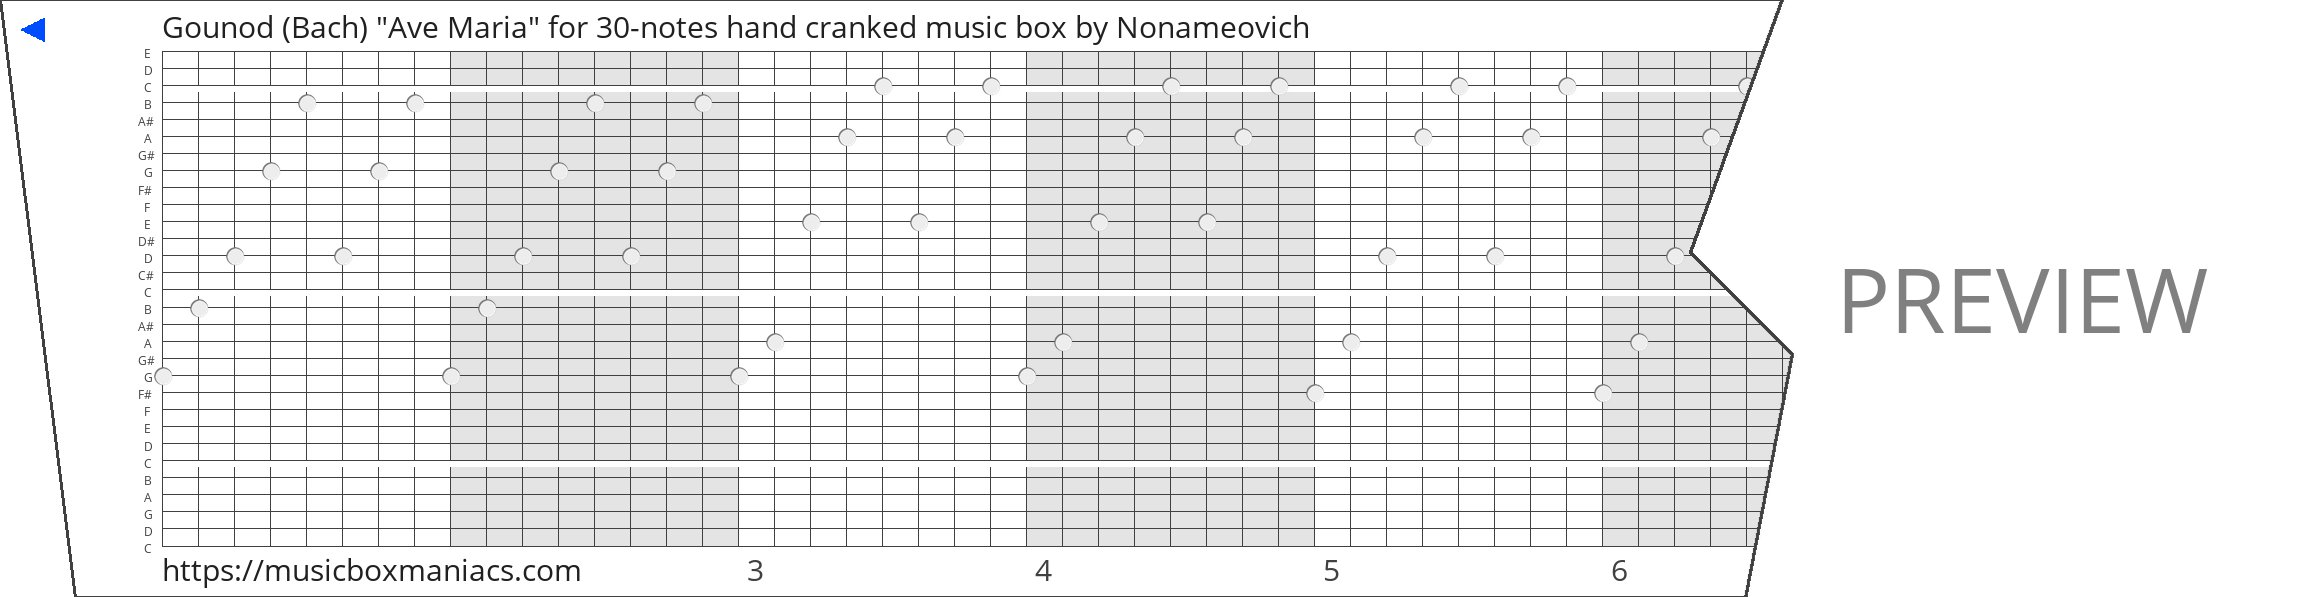 """Gounod (Bach) """"Ave Maria"""" for 30-notes hand cranked music box 30 note music box paper strip"""